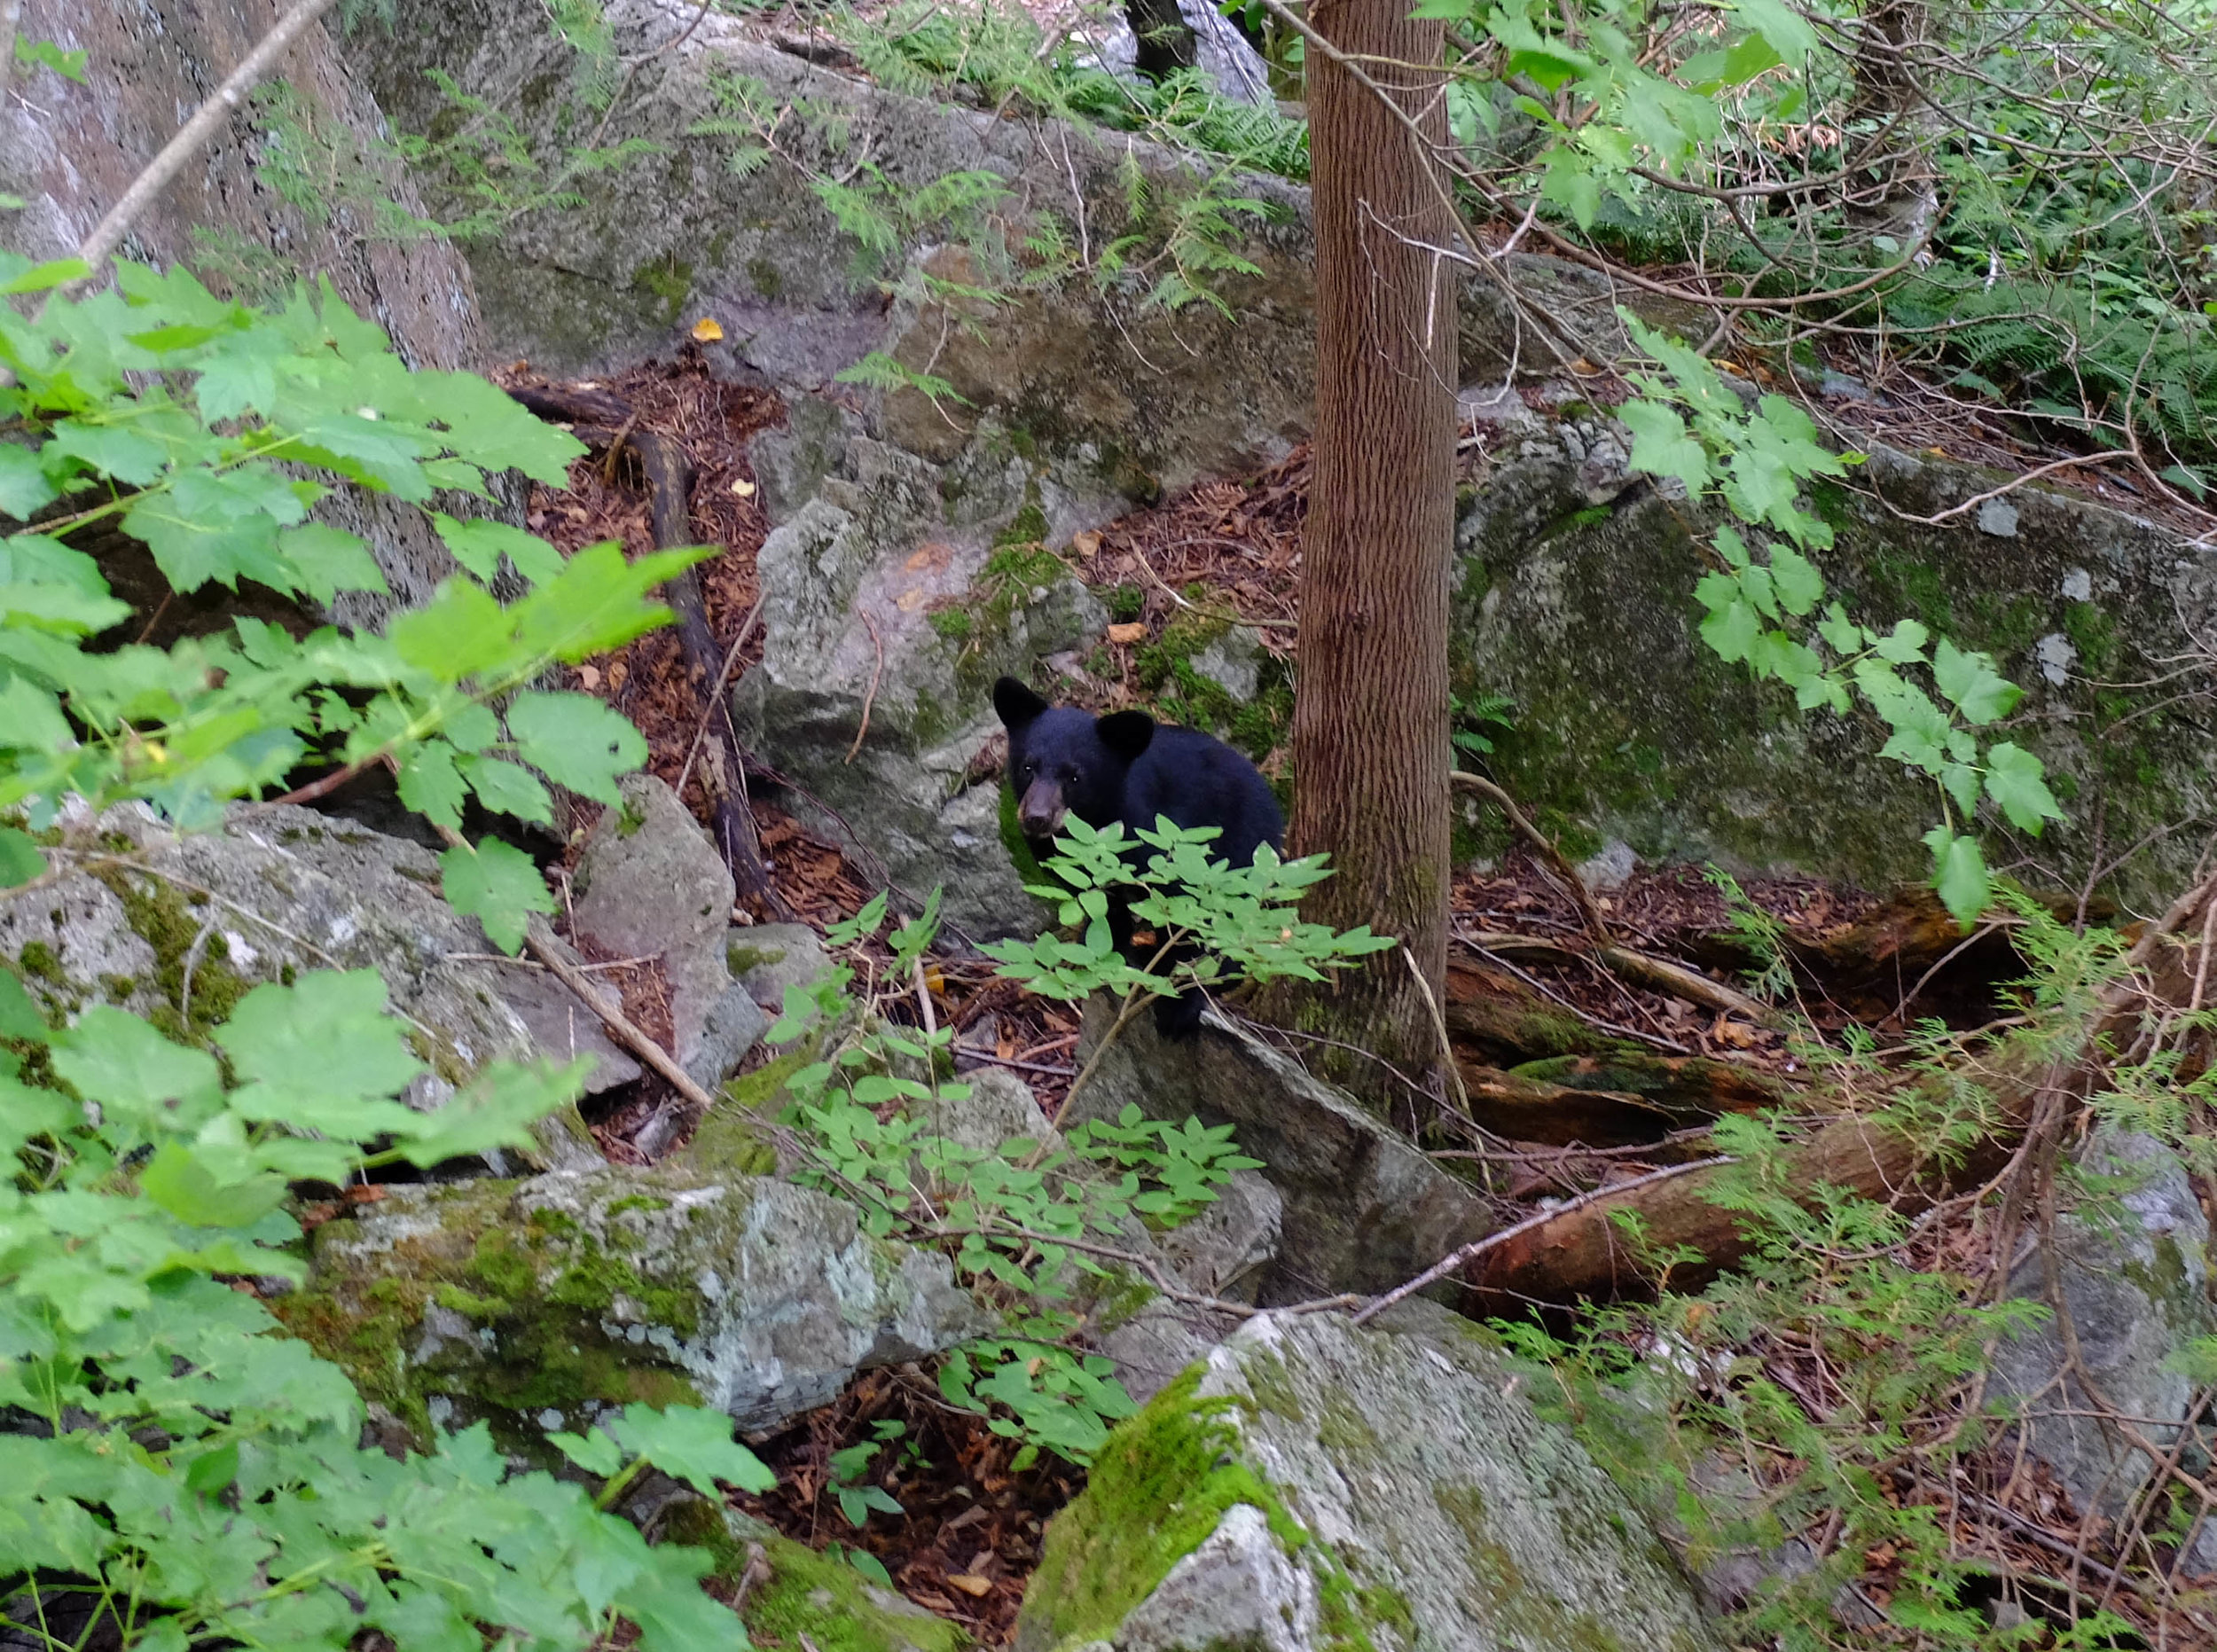 August - A family of Black Bears visiting our UVM TREK orientation group climbing at the Beer Wall